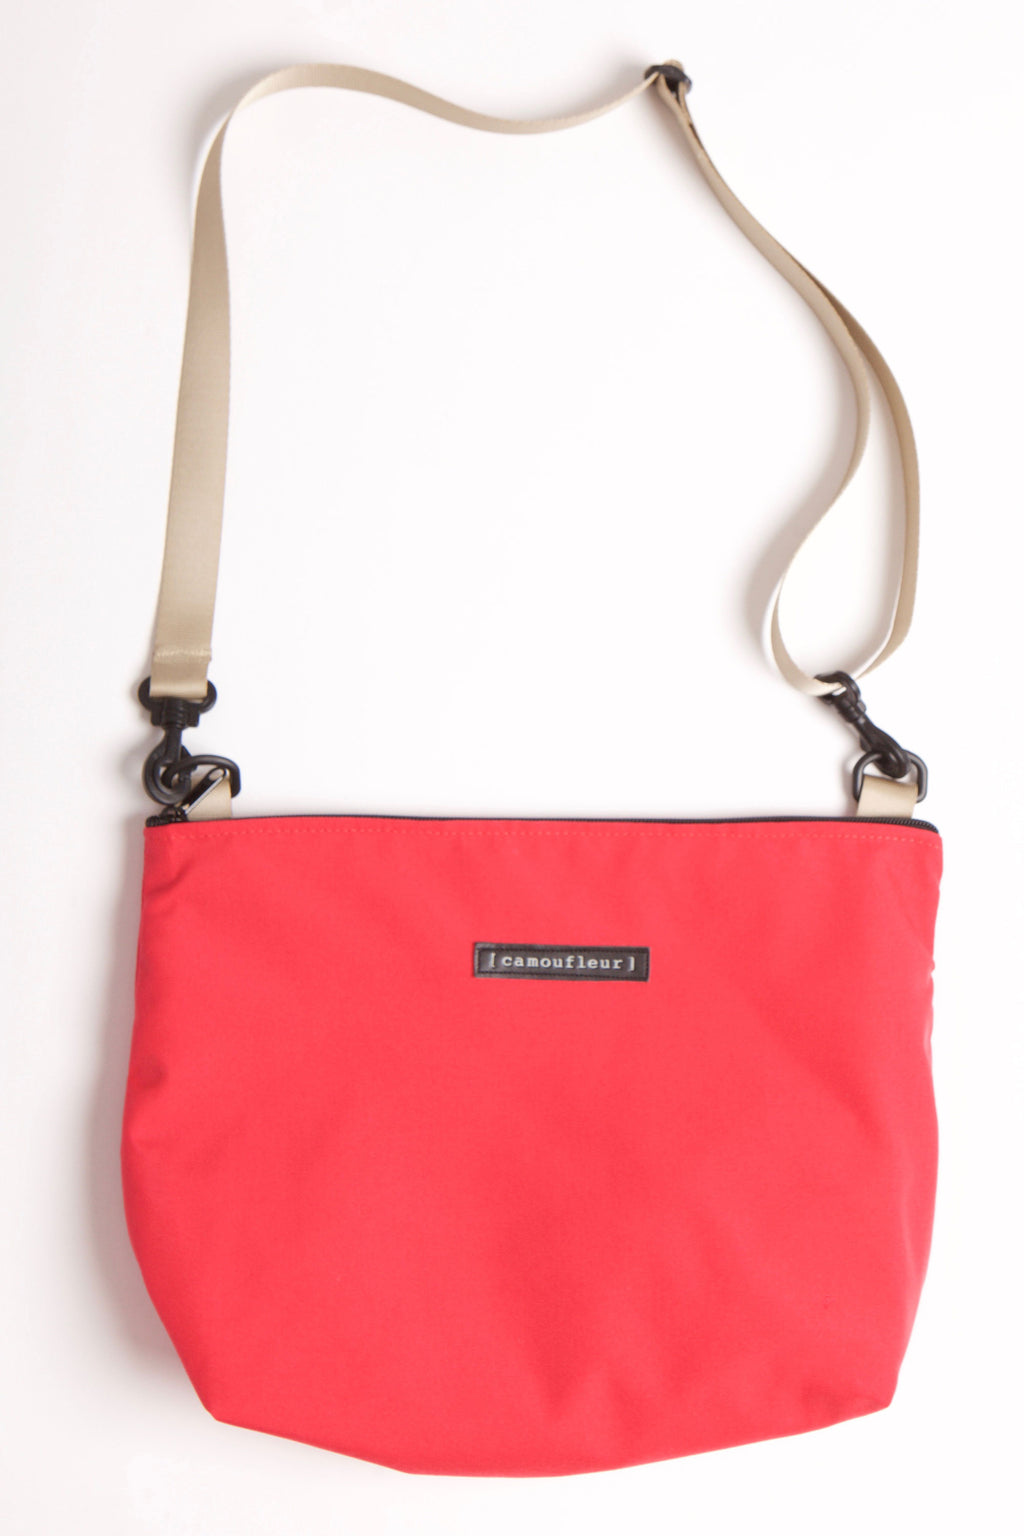 Red cross body nylon bag with khaki adjustable straps.